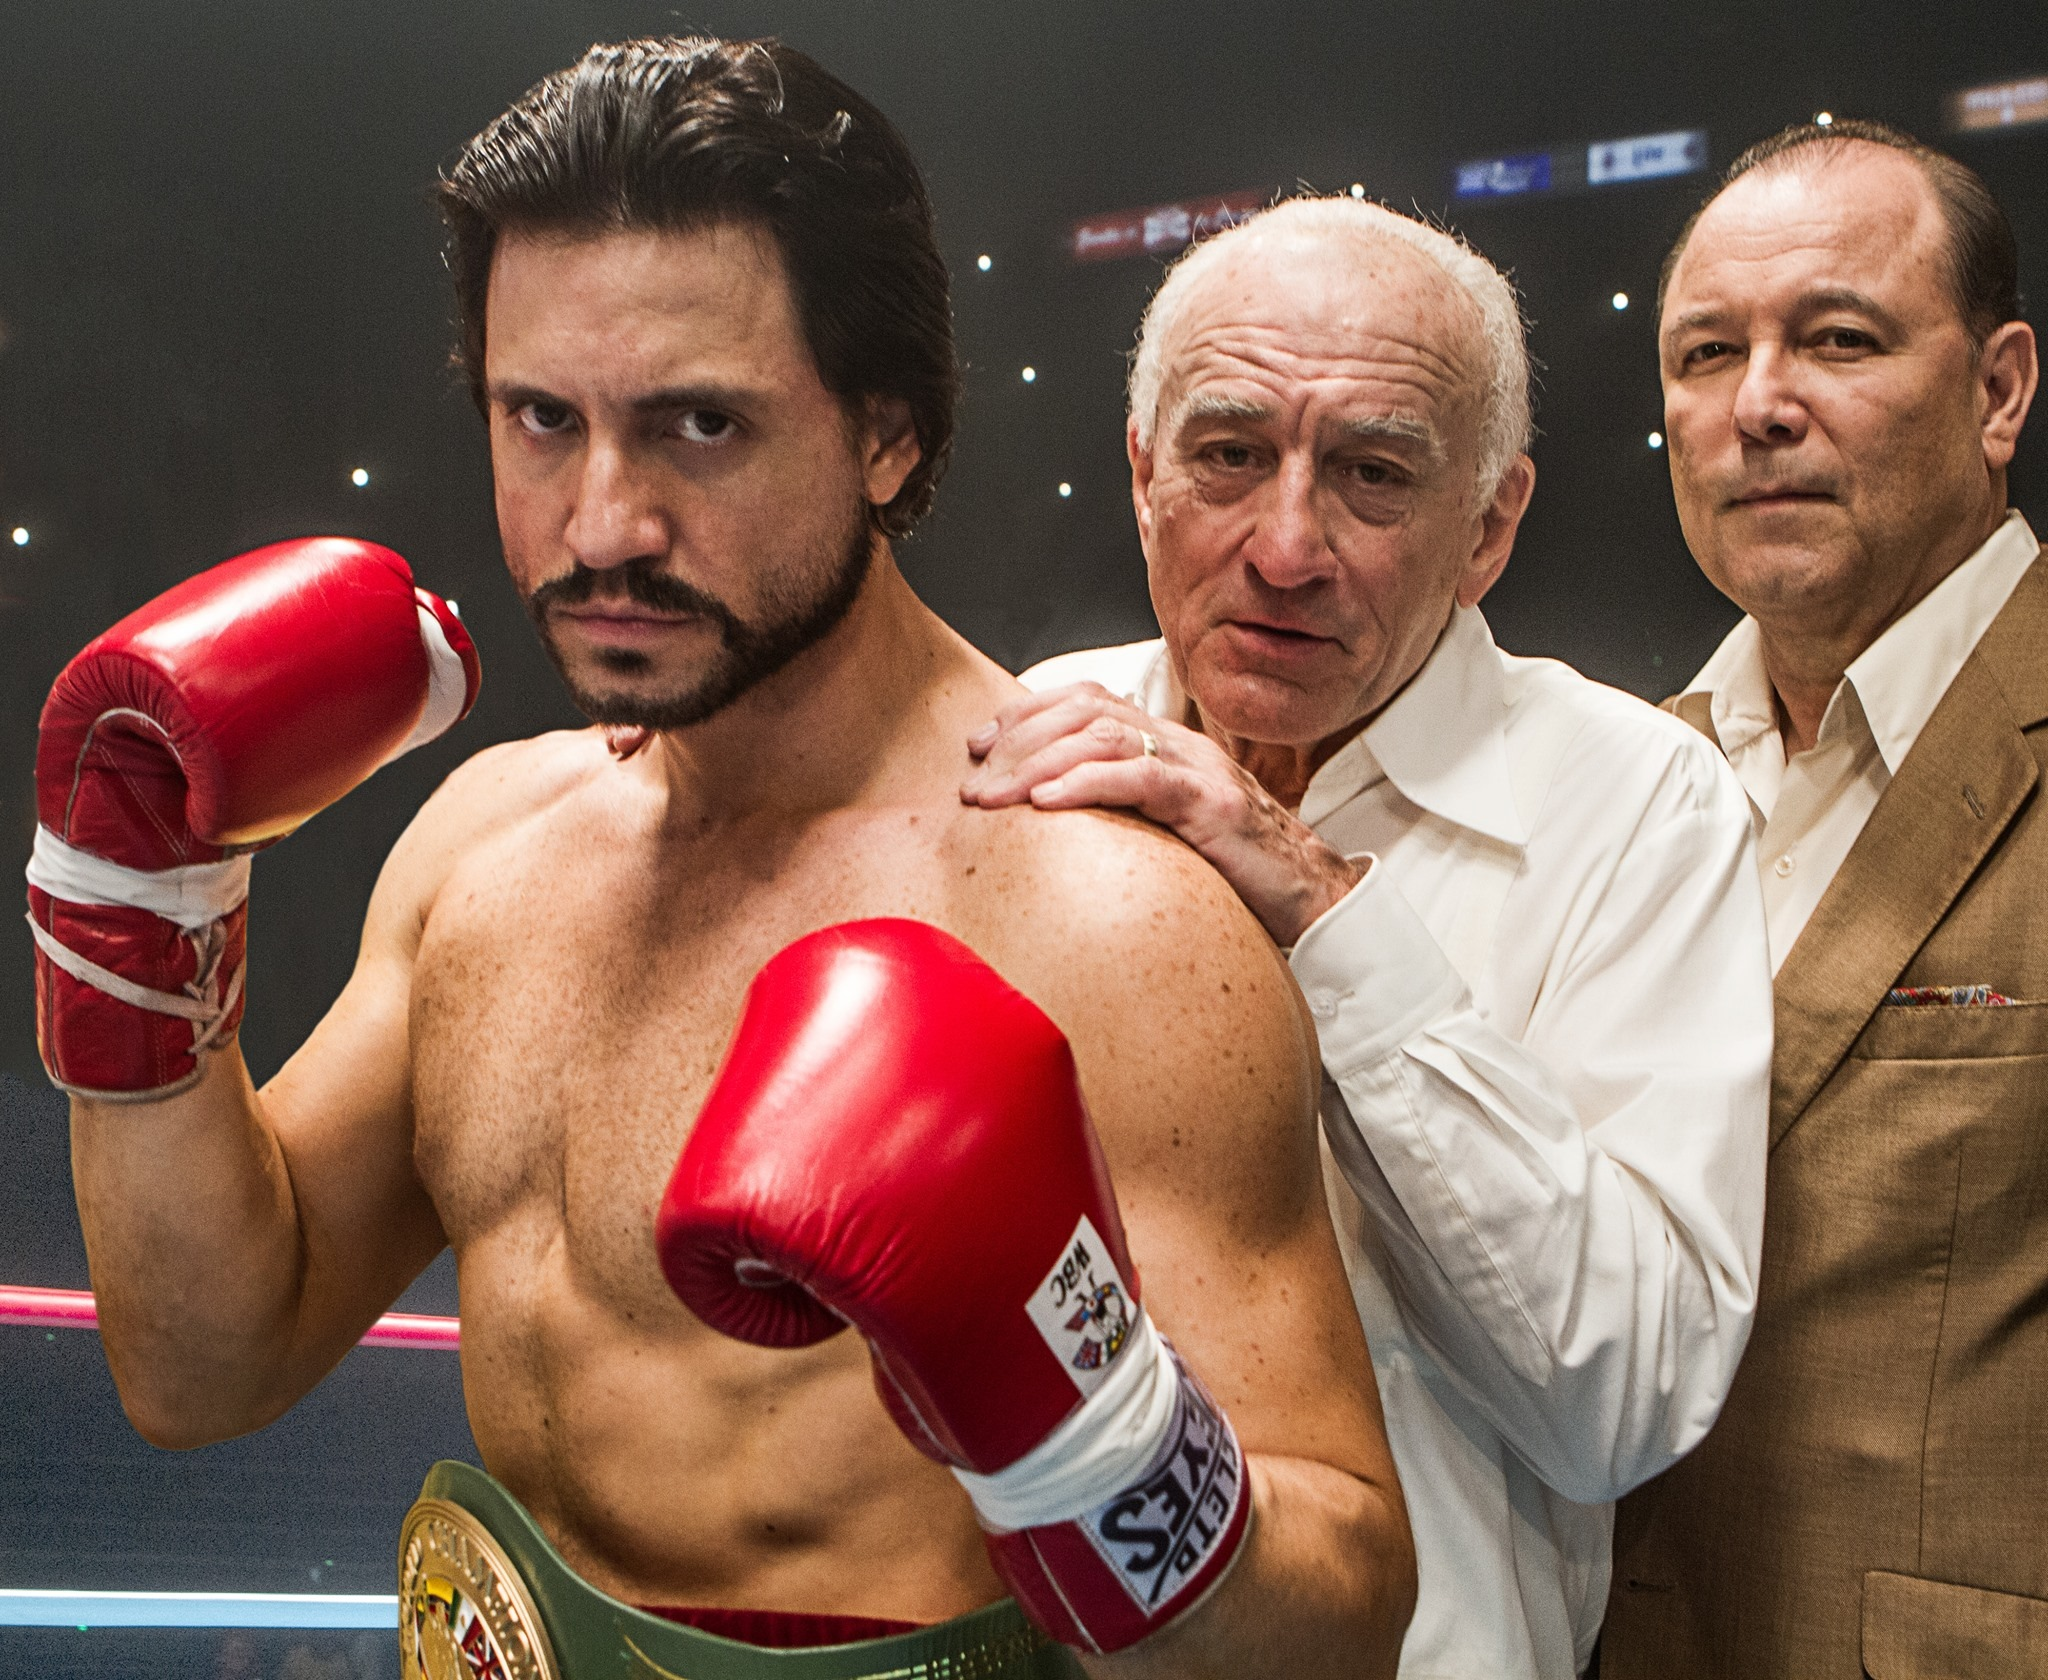 TRAILER: Panamanian Boxer Roberto Duran Is Immortalized in 'Hands of Stone' Biopic